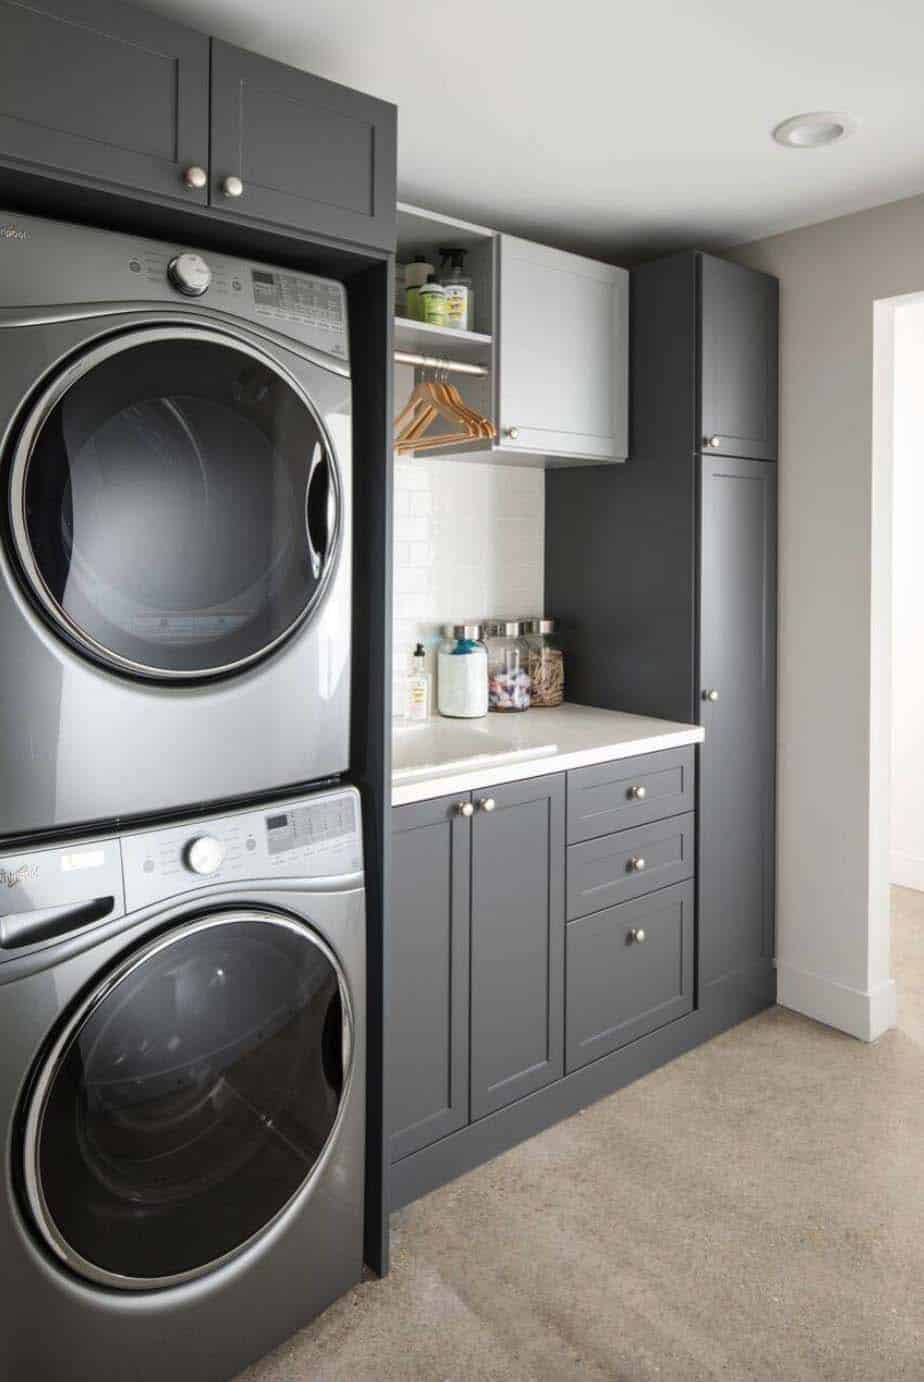 45 Functional And Stylish Laundry Room Design Ideas To Inspire on Laundry Room Decor Ideas  id=33399